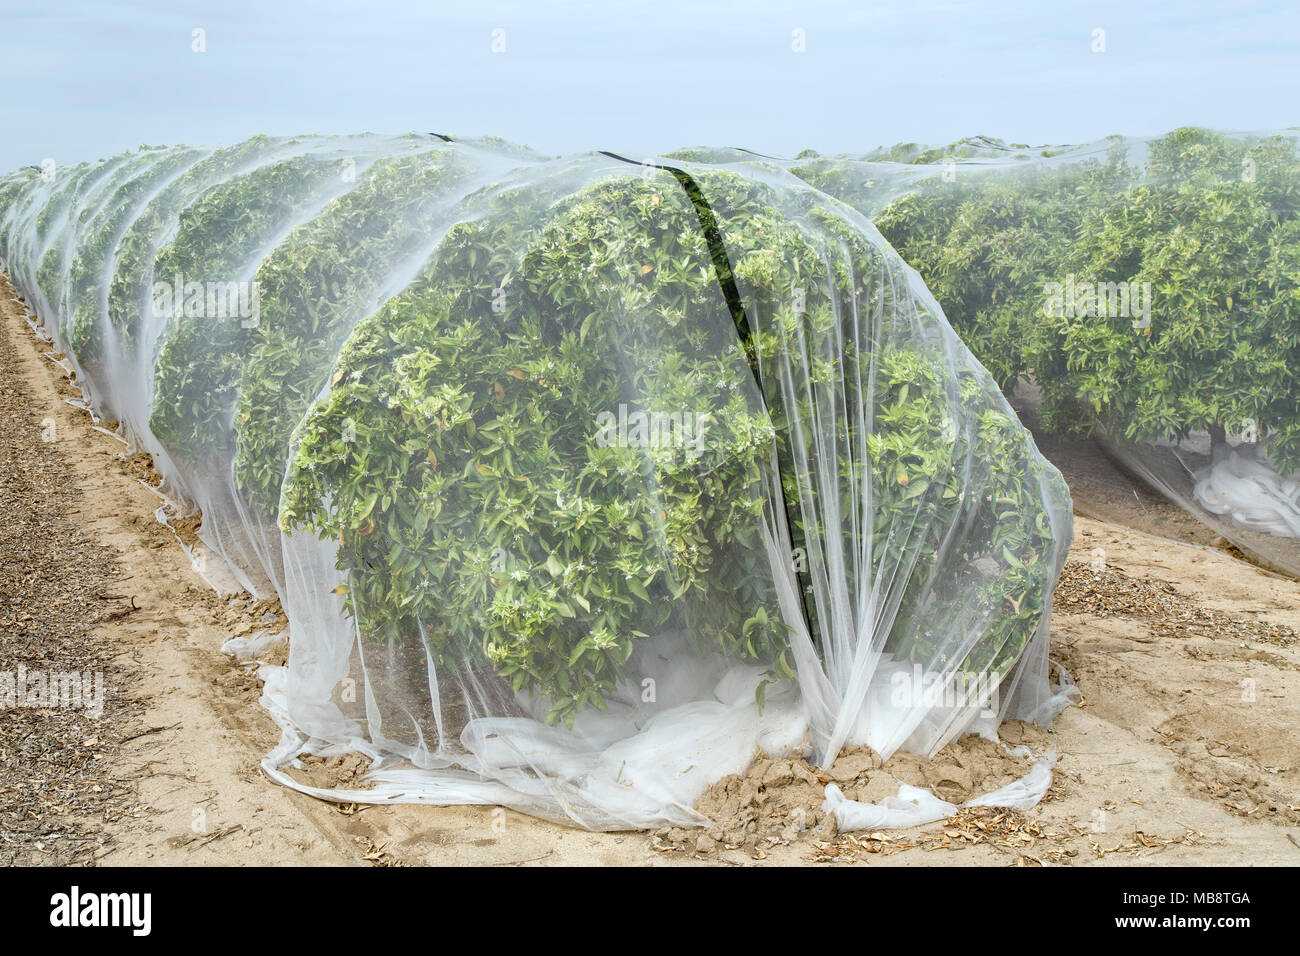 Netting protecting ''Clementine'  Mandarin orange orchard against cross-pollination, polyethylene fine mesh netting, - Stock Image